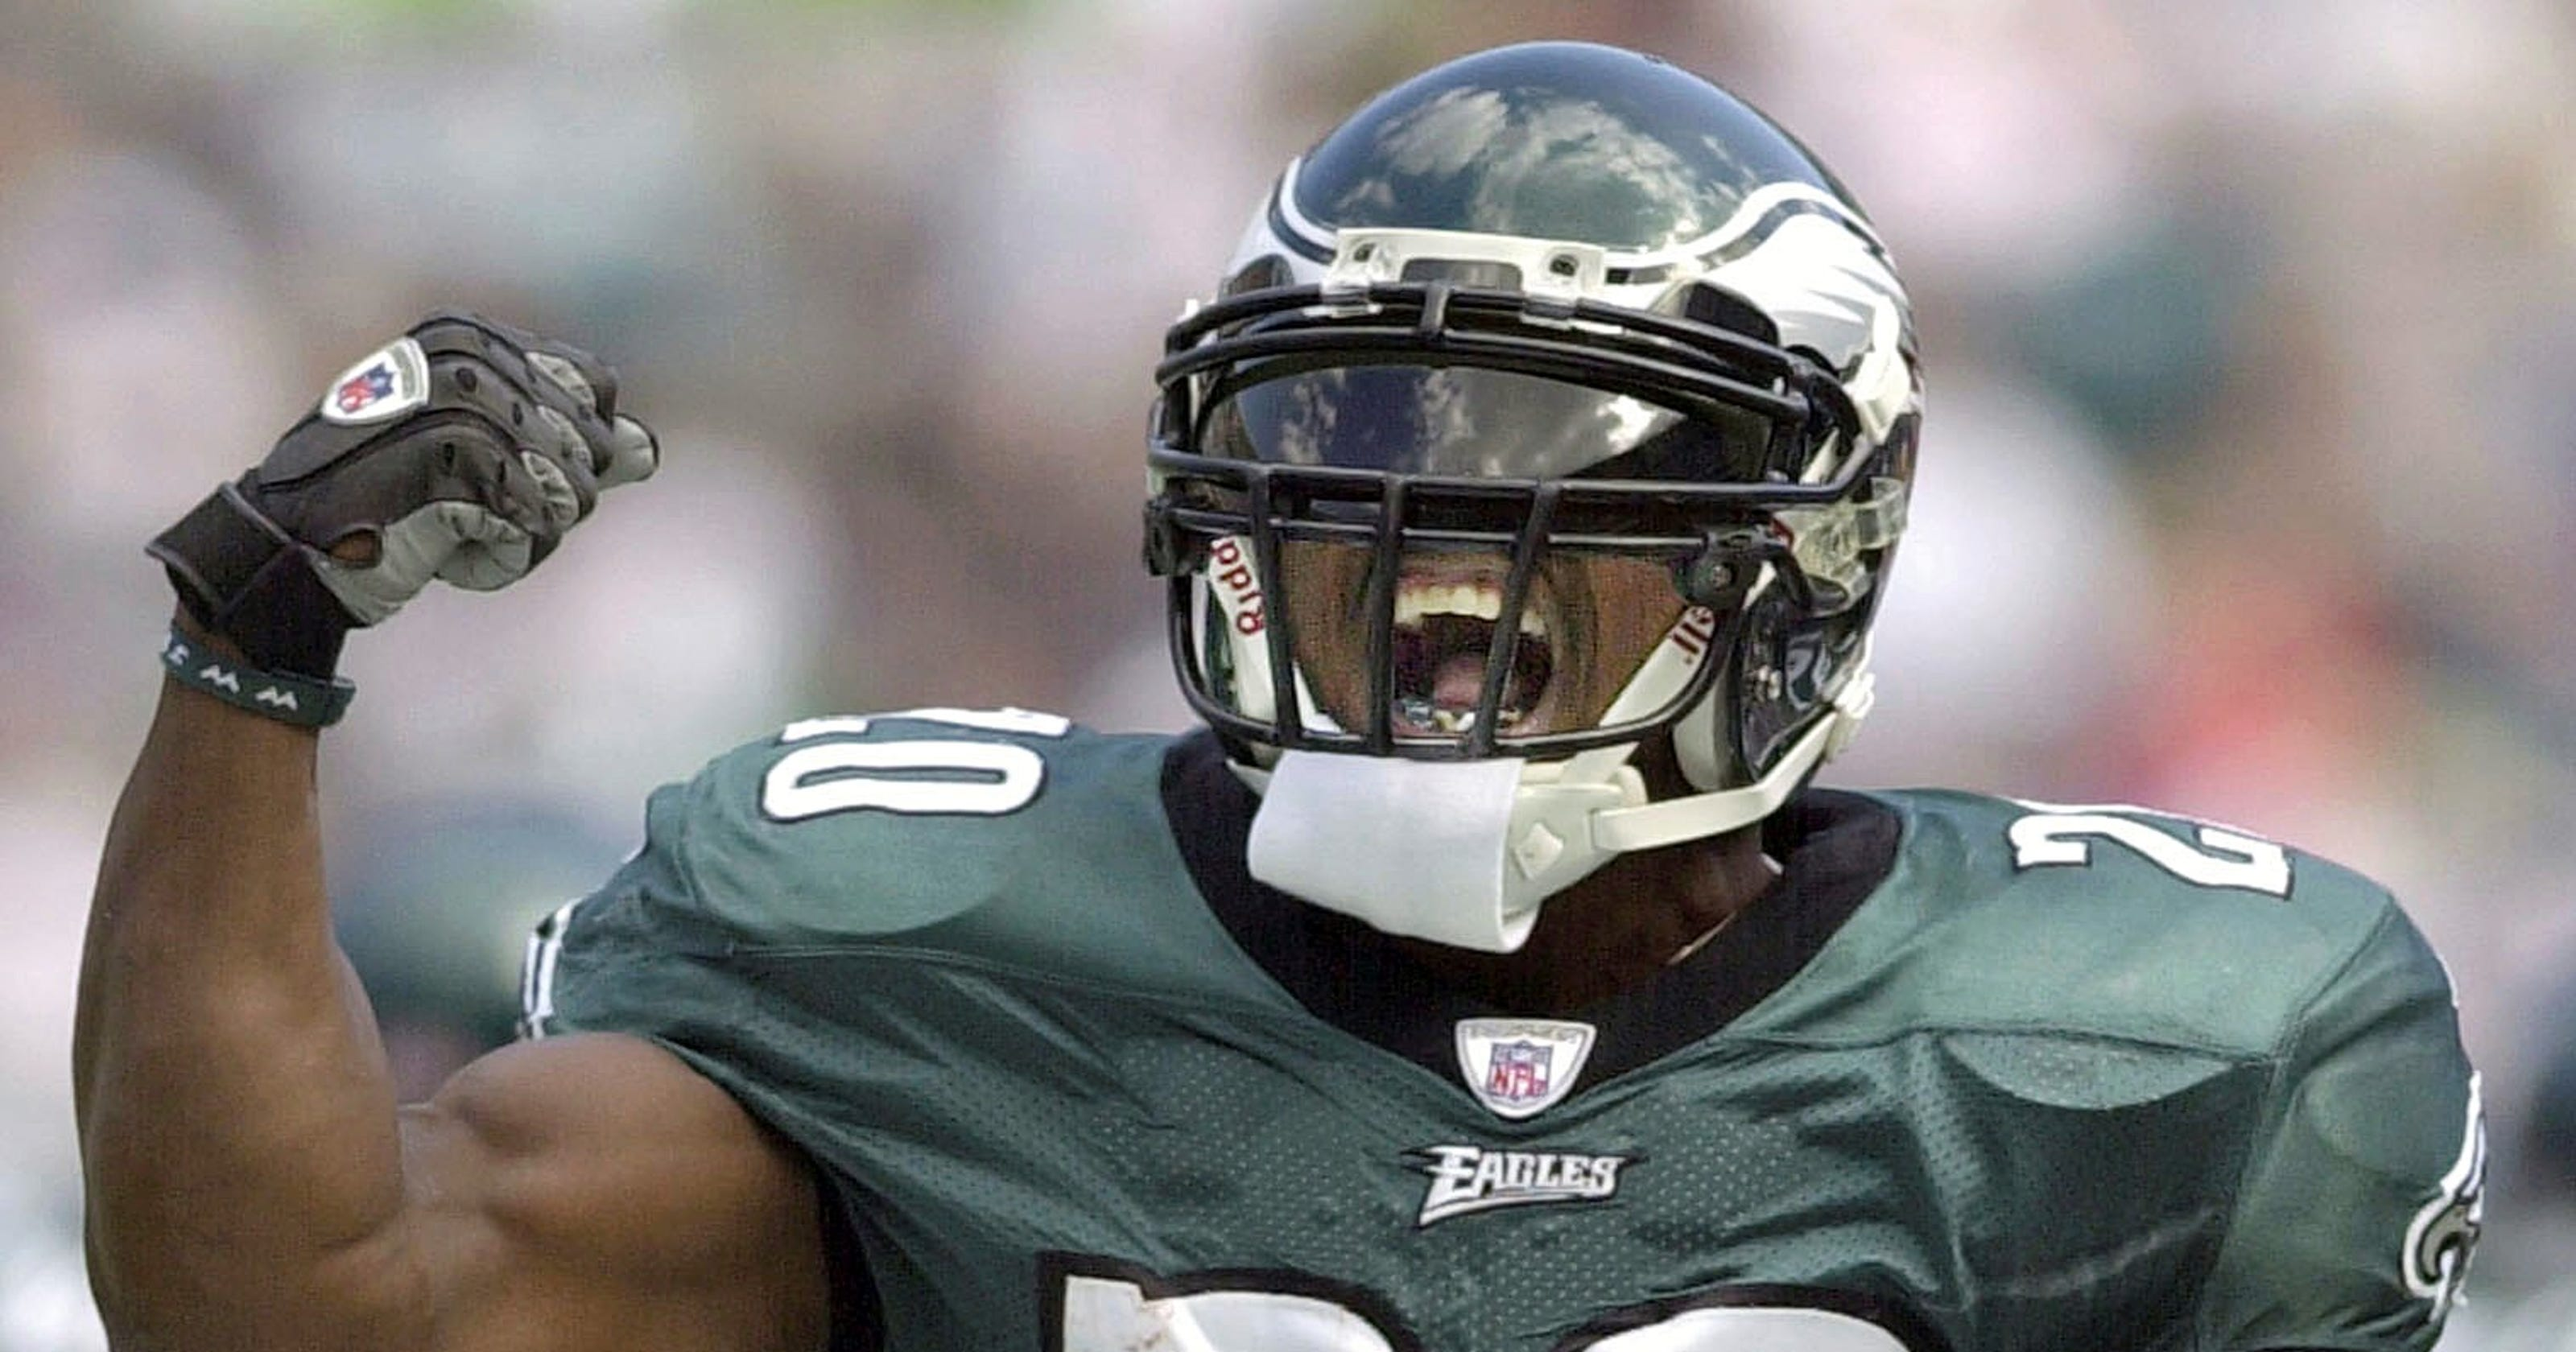 5ec995dff28 How Brian Dawkins' wife helped save his life, allowing him to become Hall  of Famer